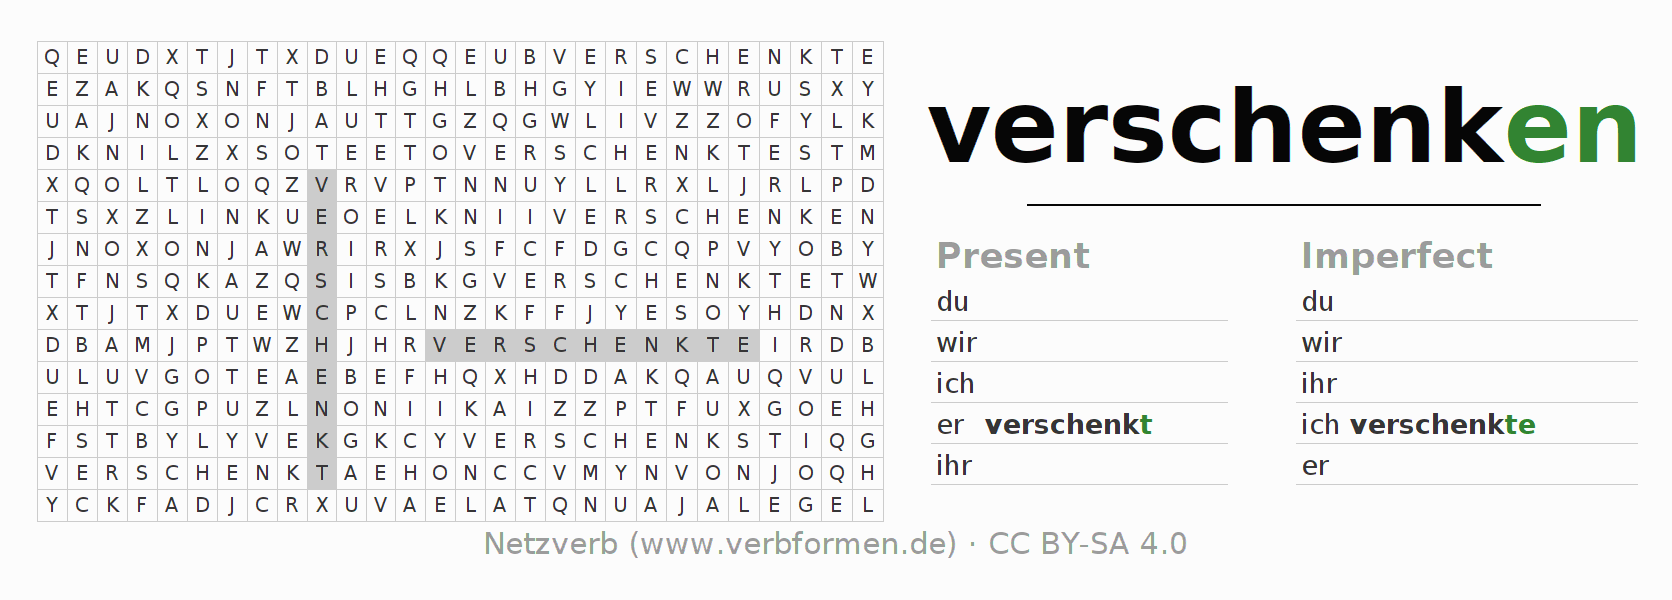 Word search puzzle for the conjugation of the verb verschenken